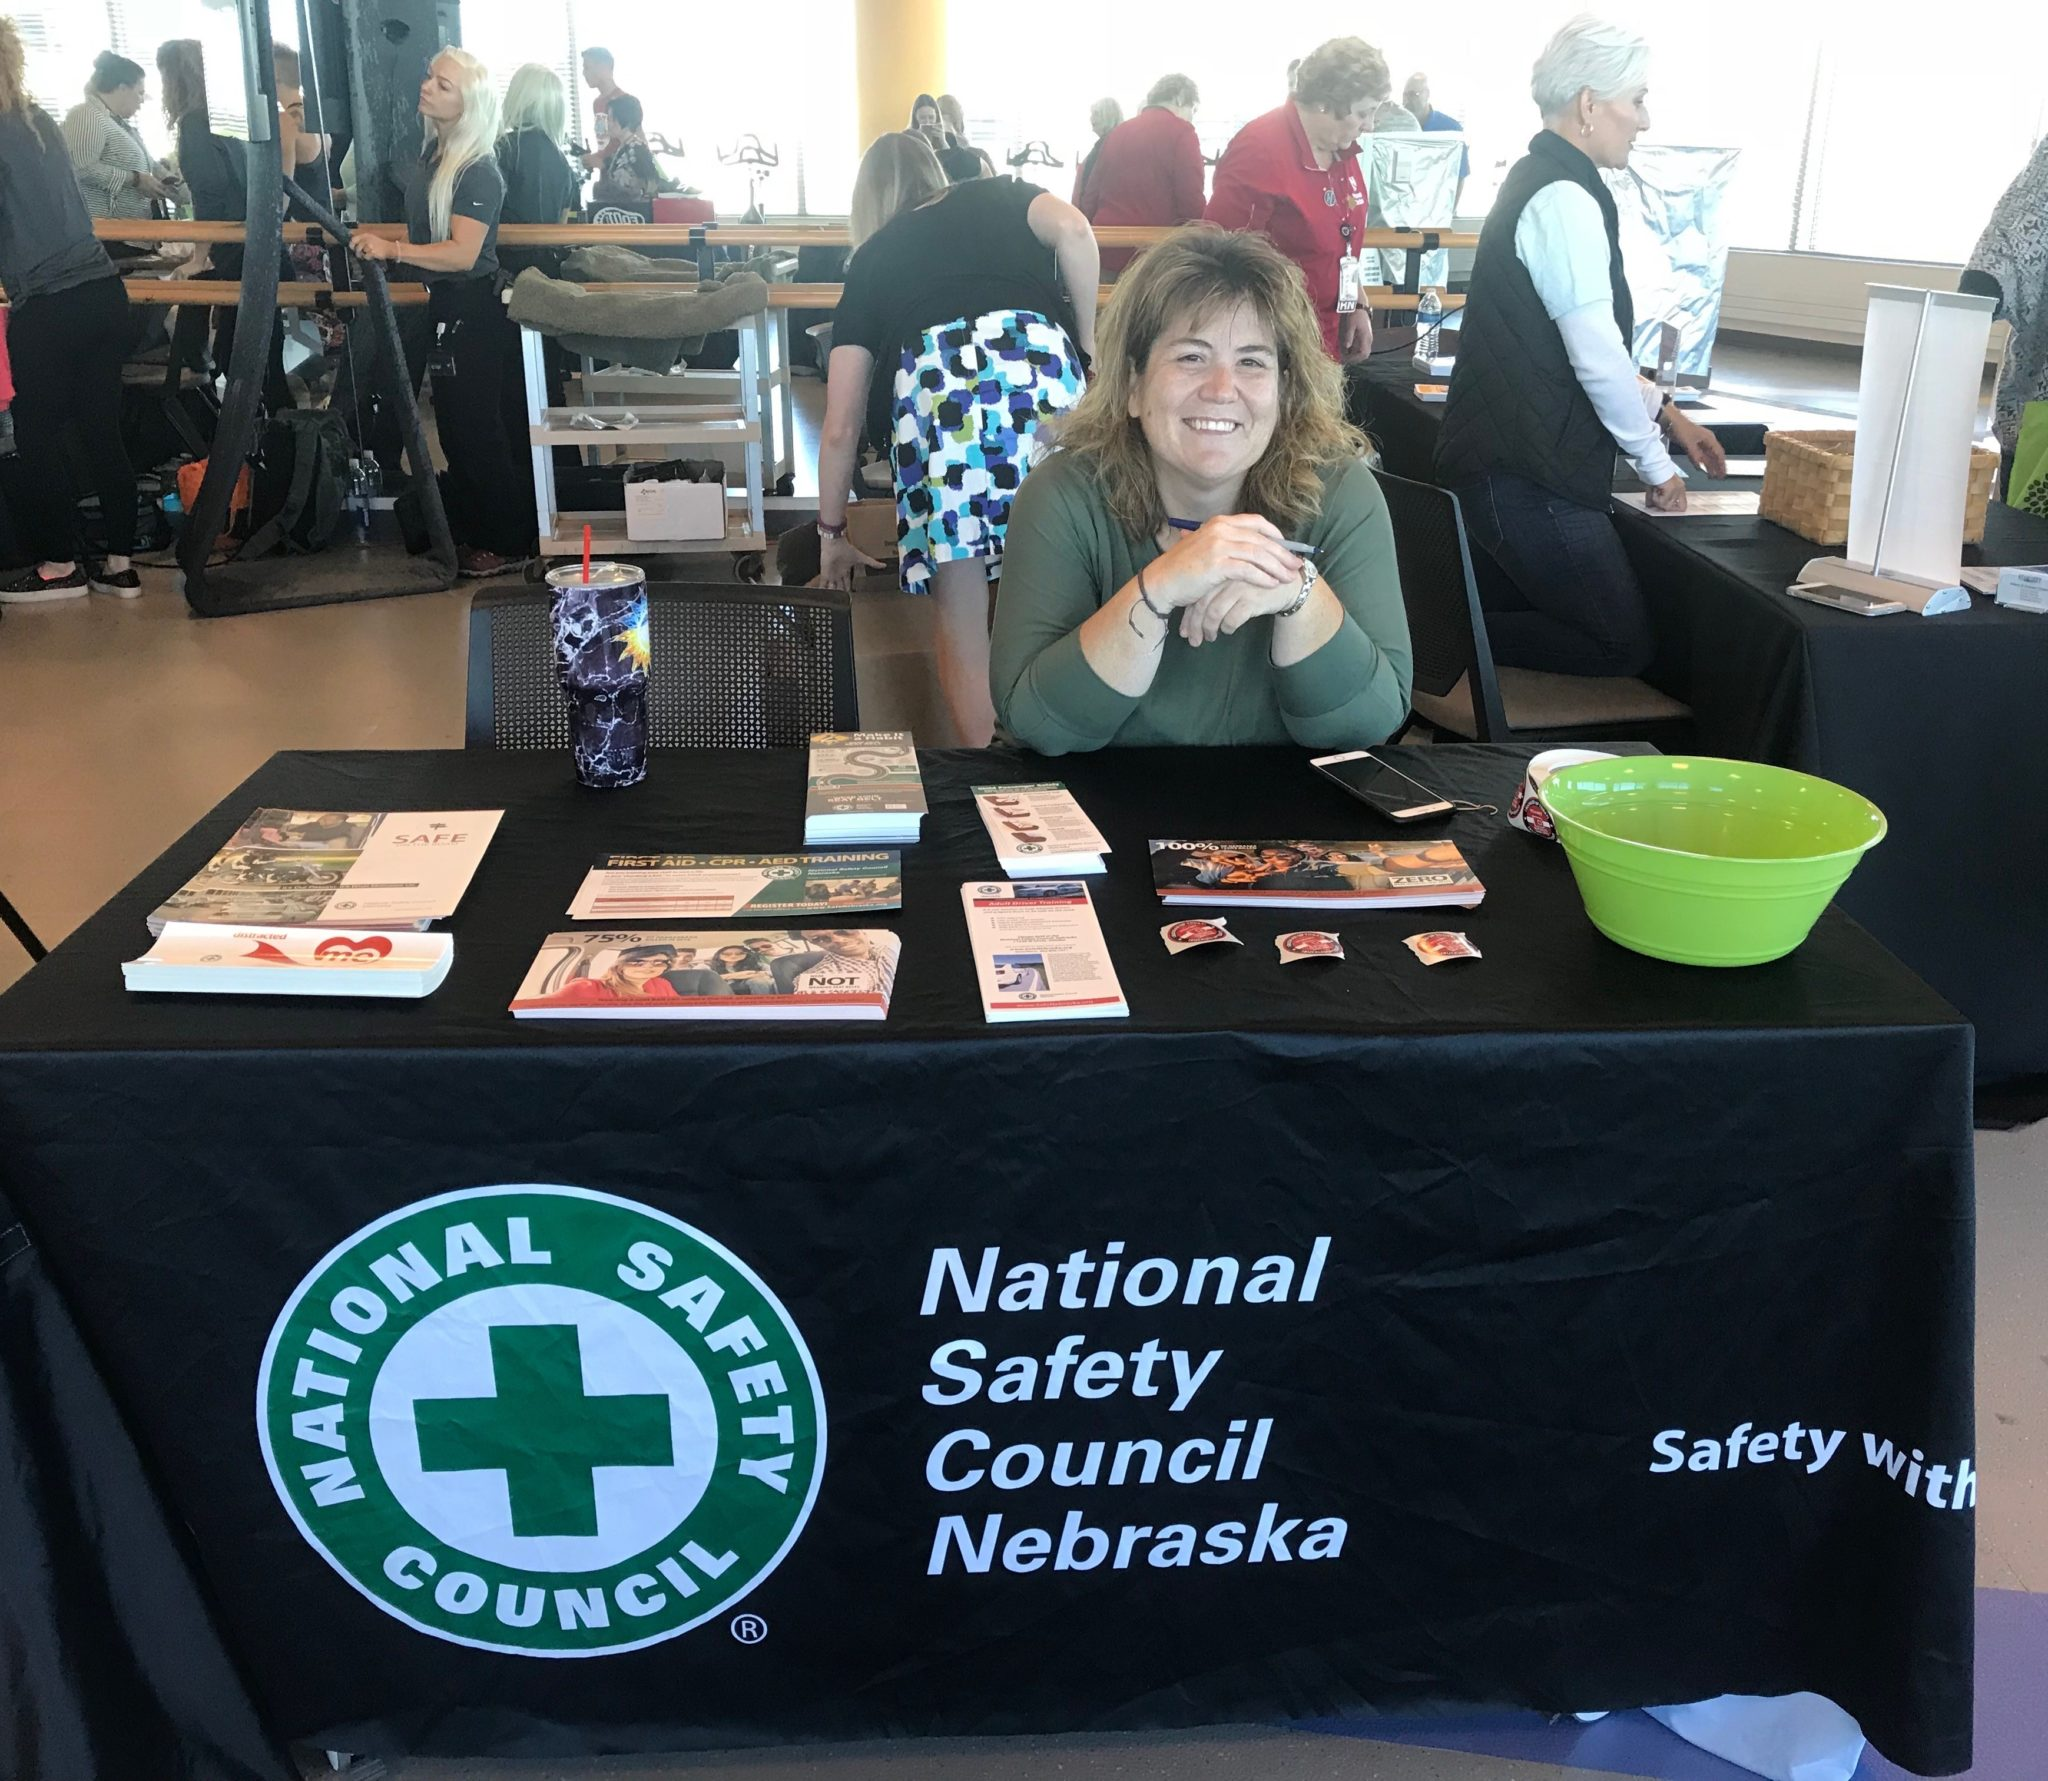 Annual Health Safety And Employee Benefits Fair Proves